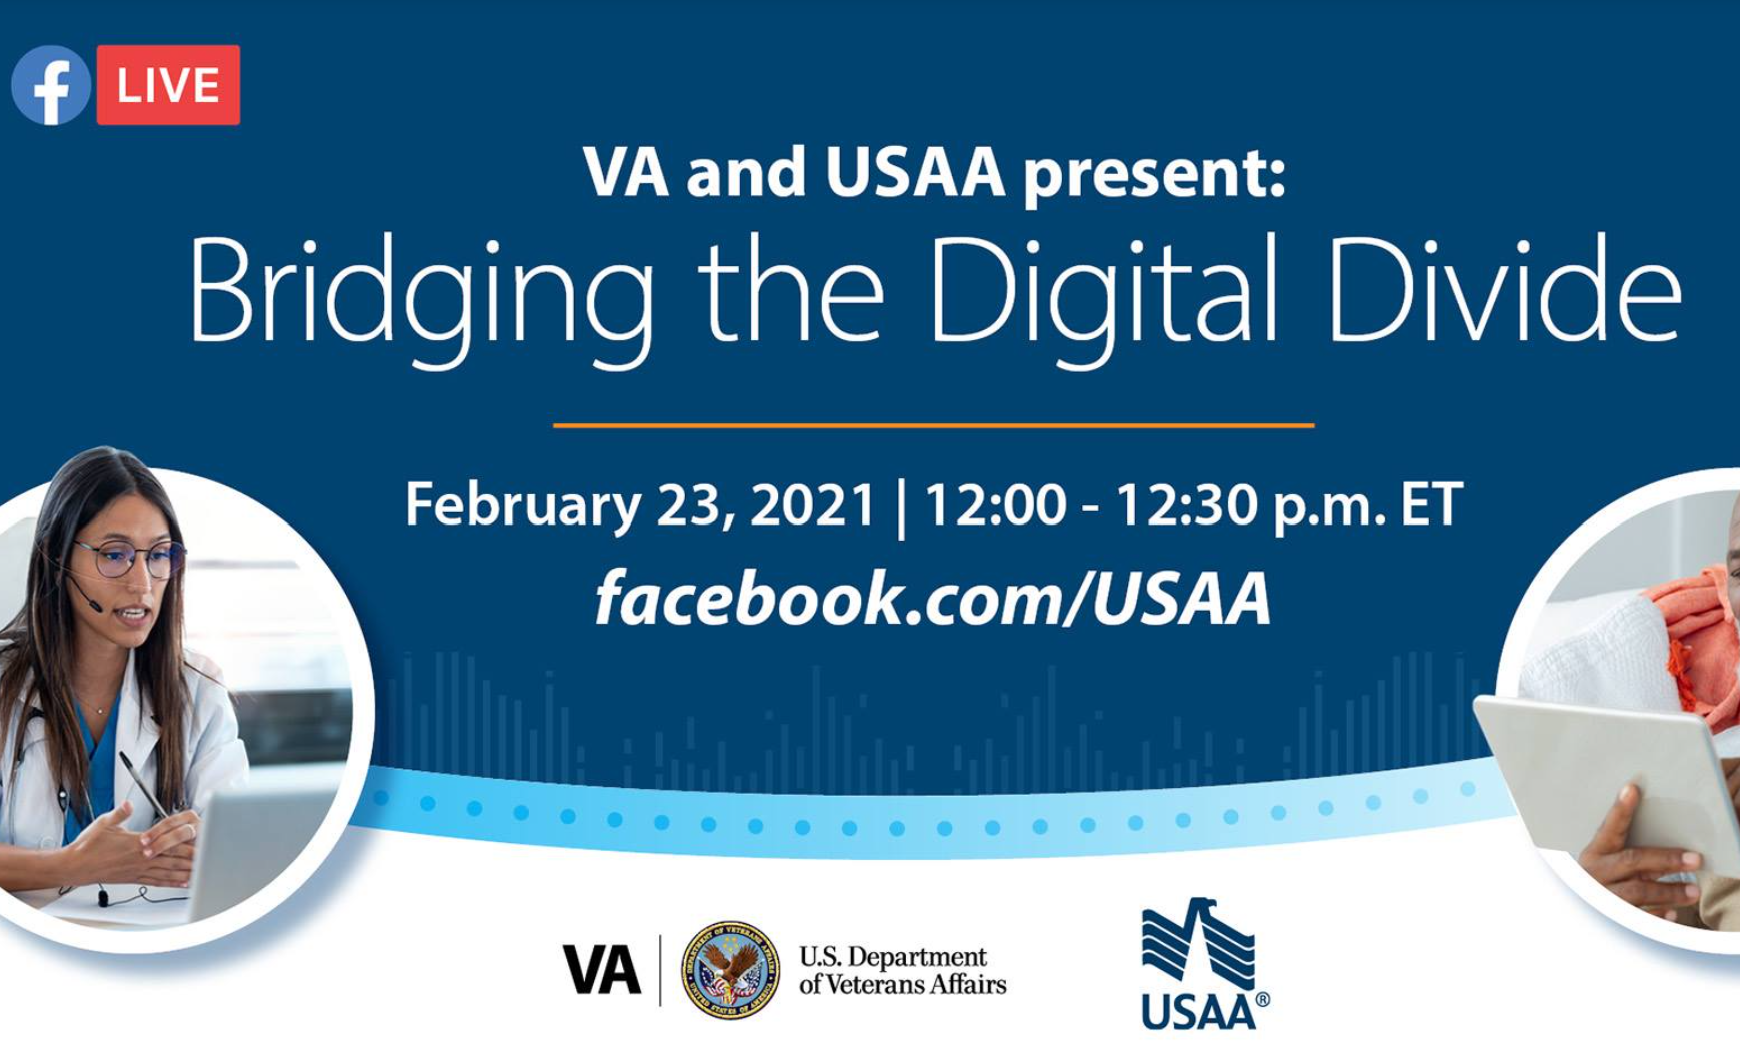 USAA telehealth event flyer